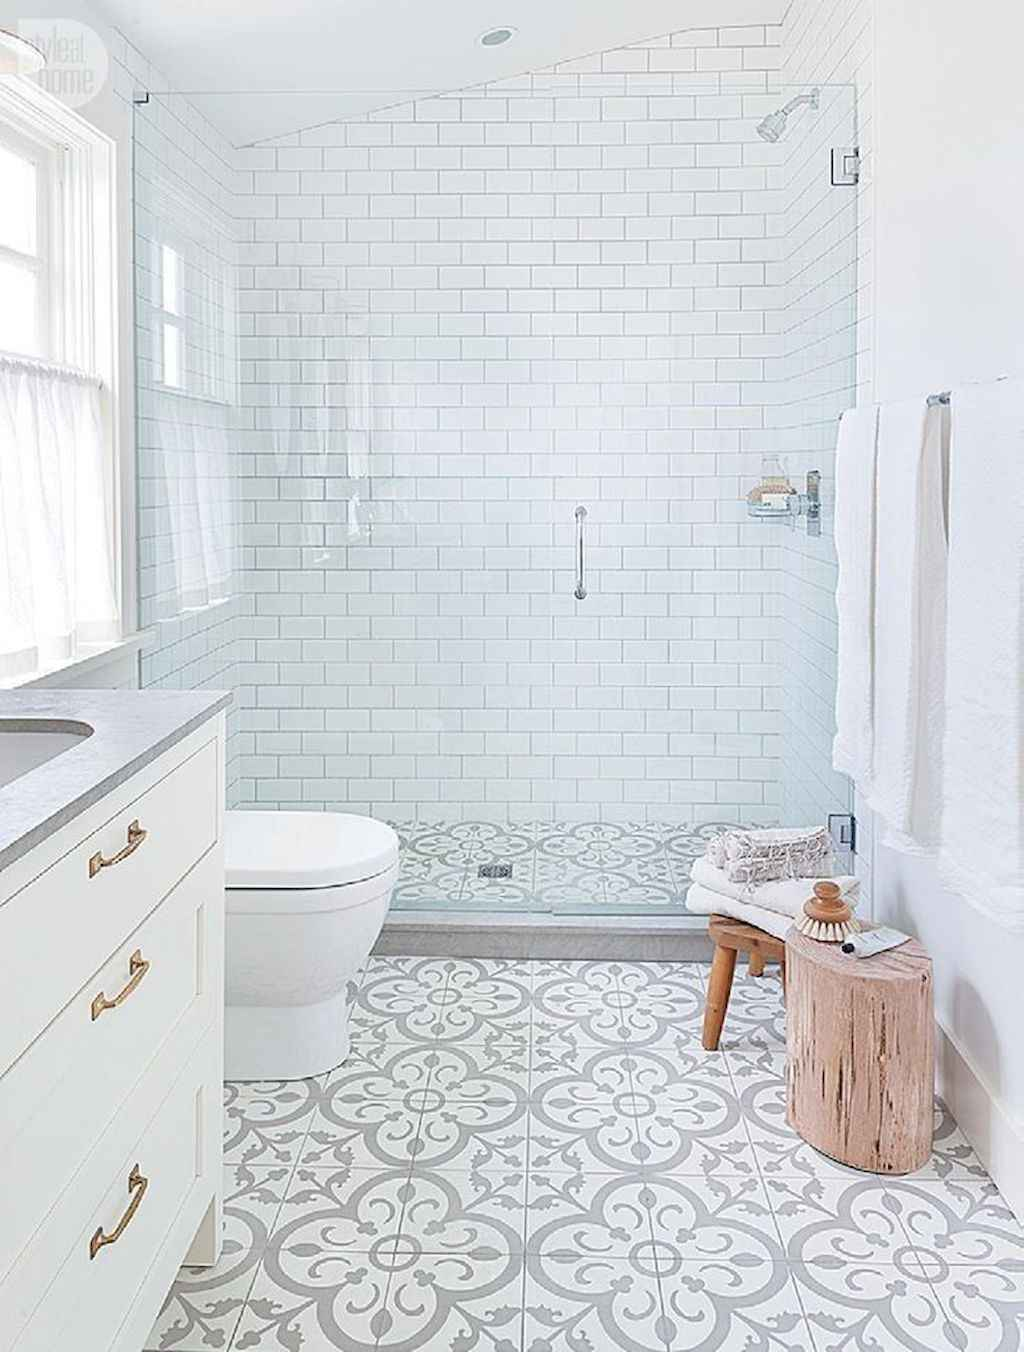 111 awesome small bathroom remodel ideas on a budget (70)